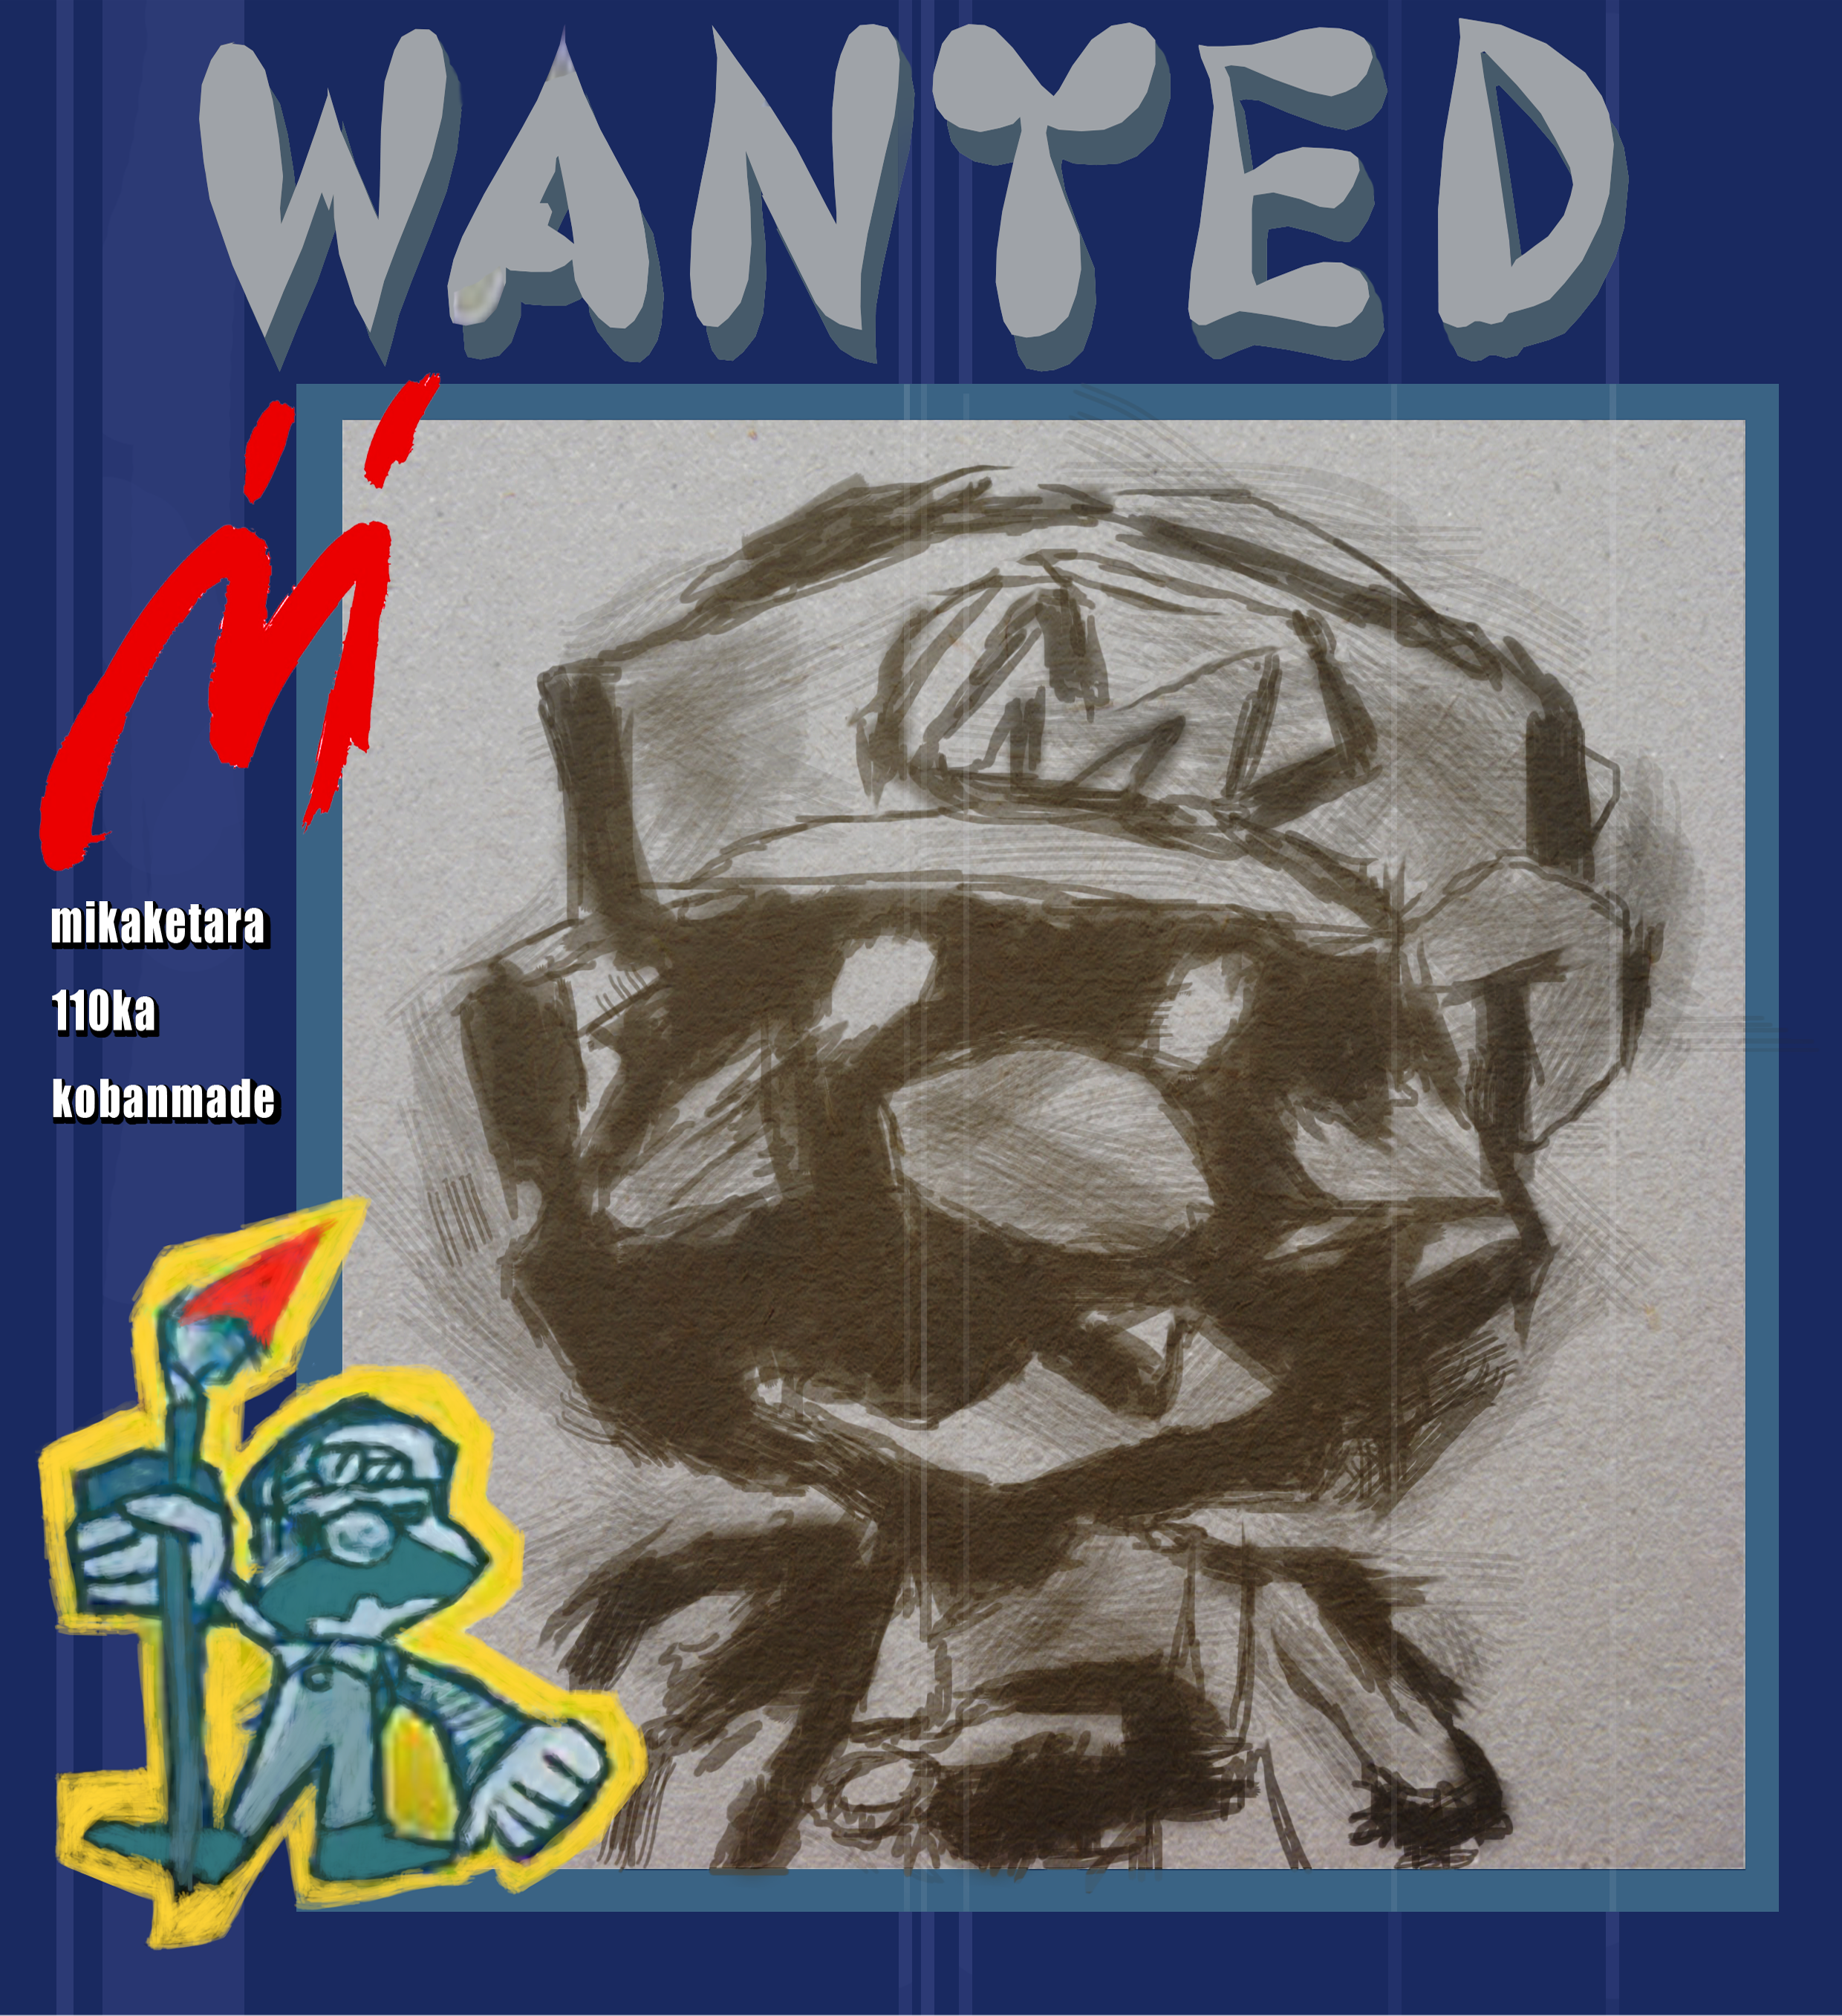 Shadow Mario wanted poster HD Ingame poster restoration